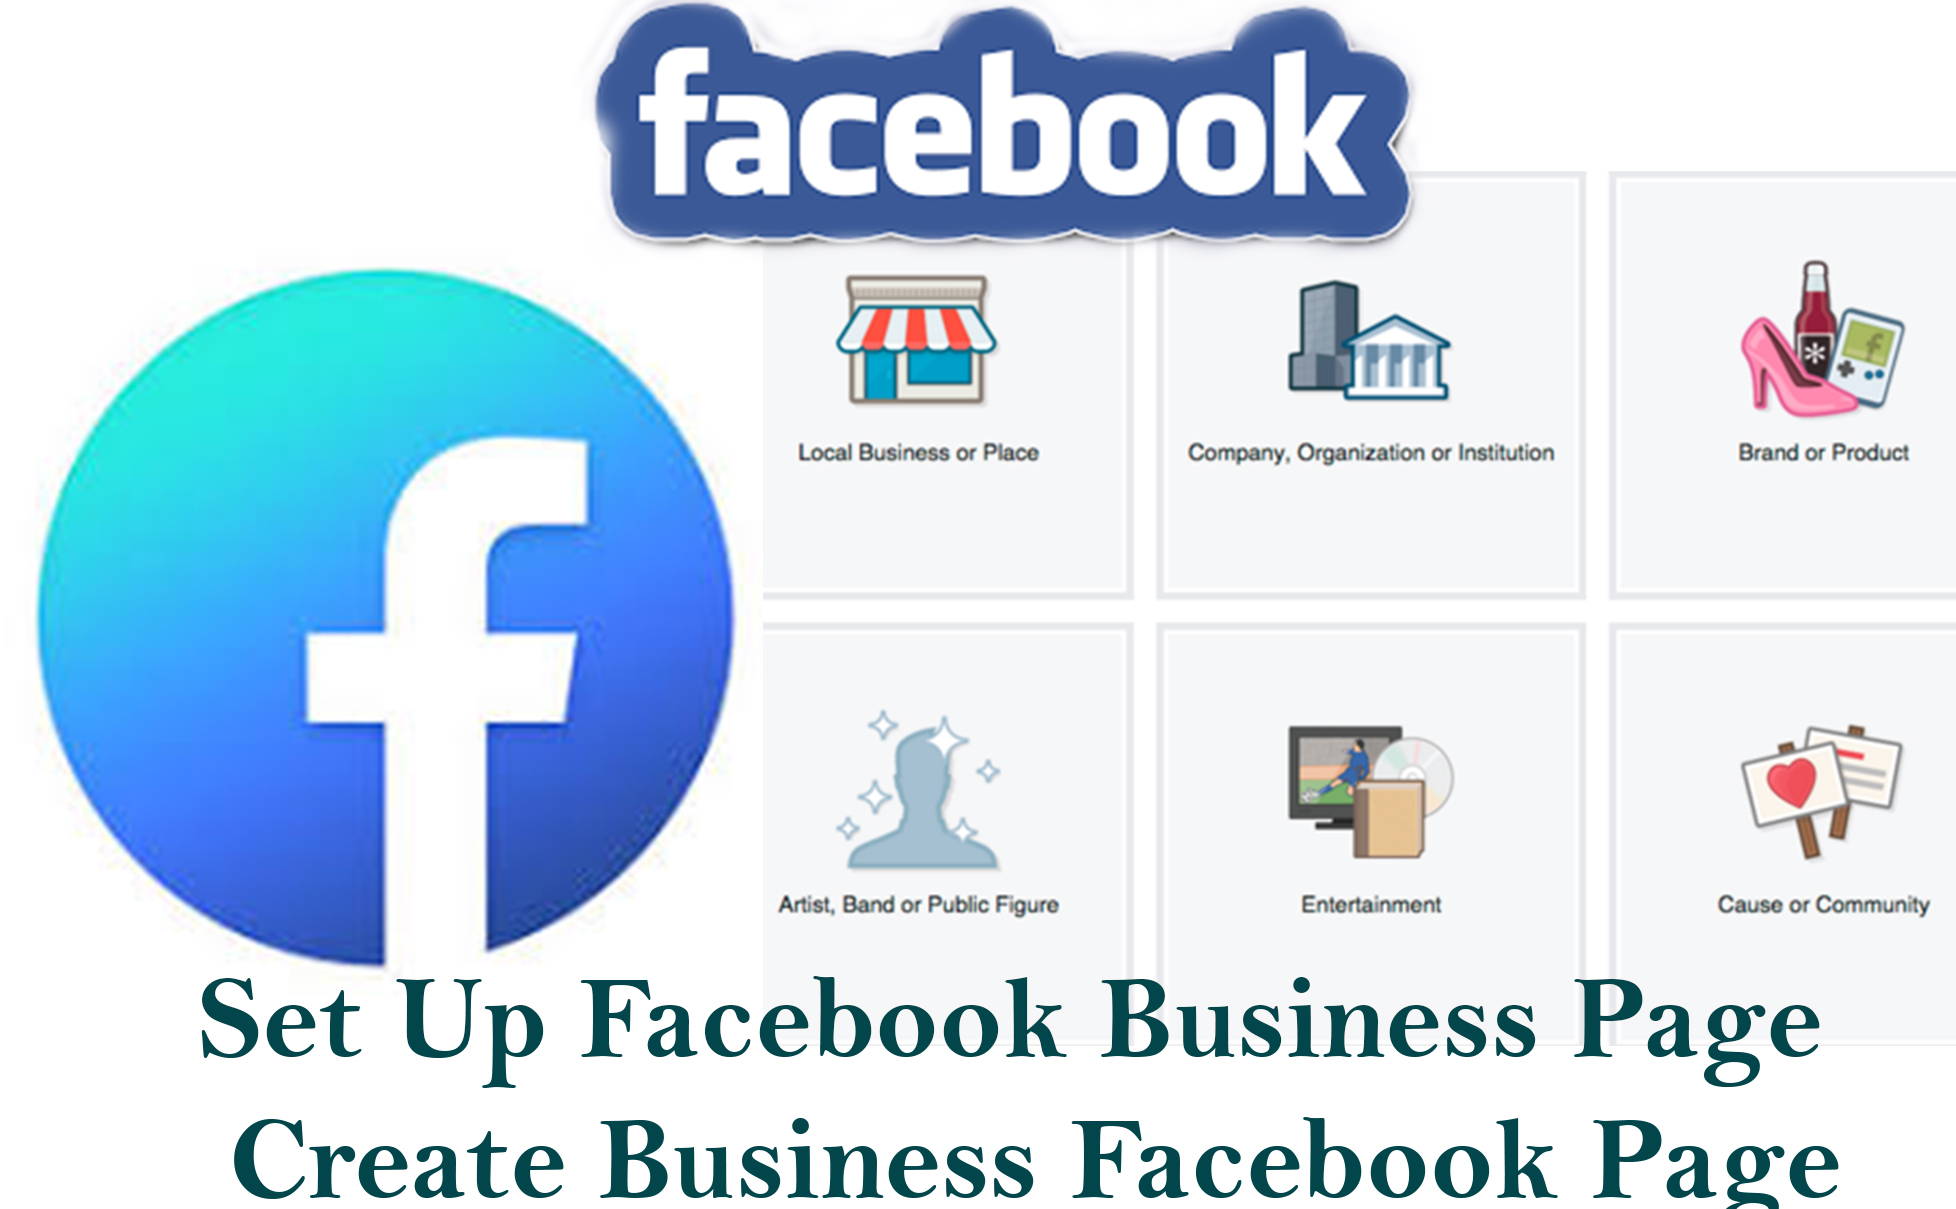 Set Up Facebook Business Page - Create Business Facebook Page - TecVase